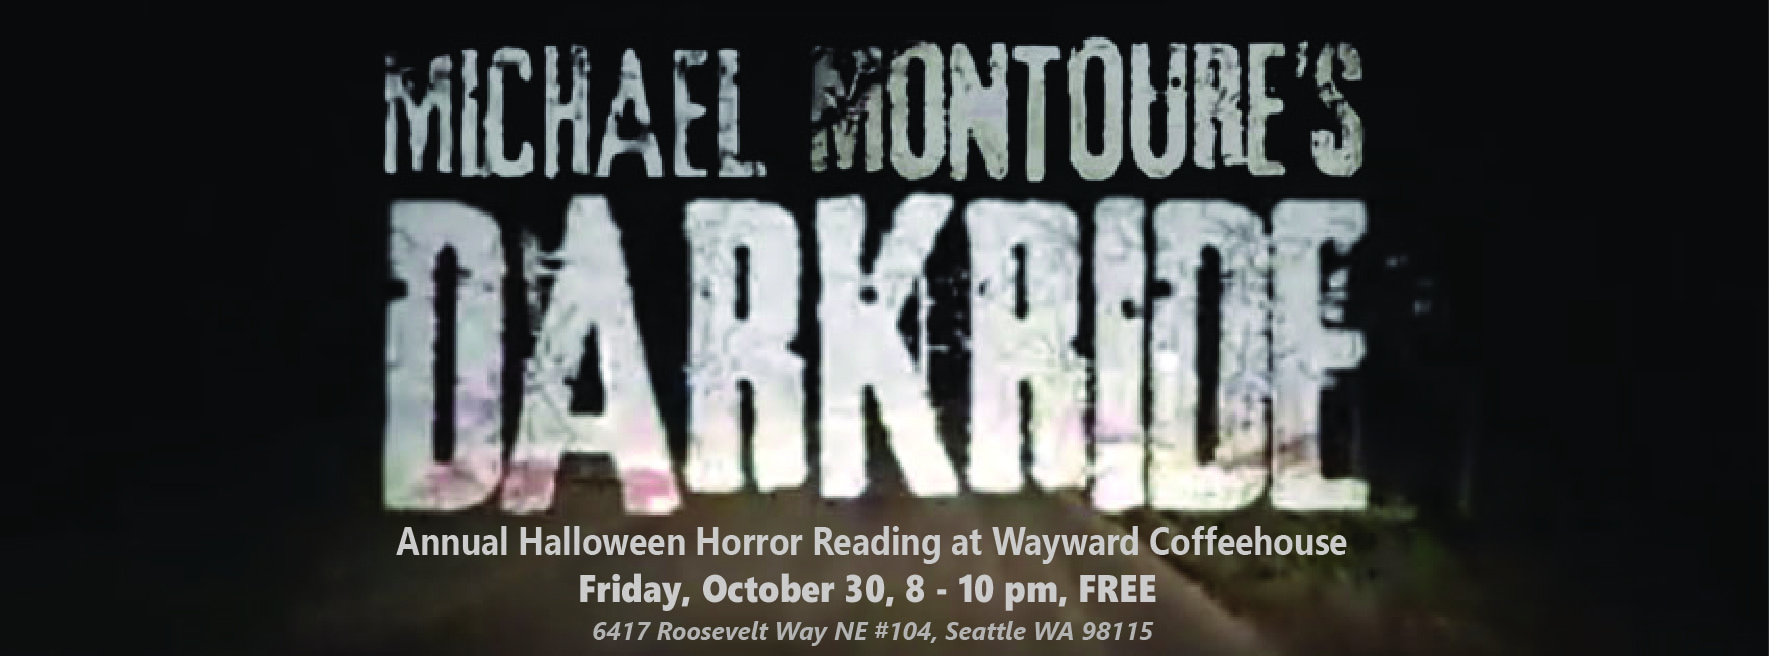 FB Banner - Halloween Horror Reading 2015-1021